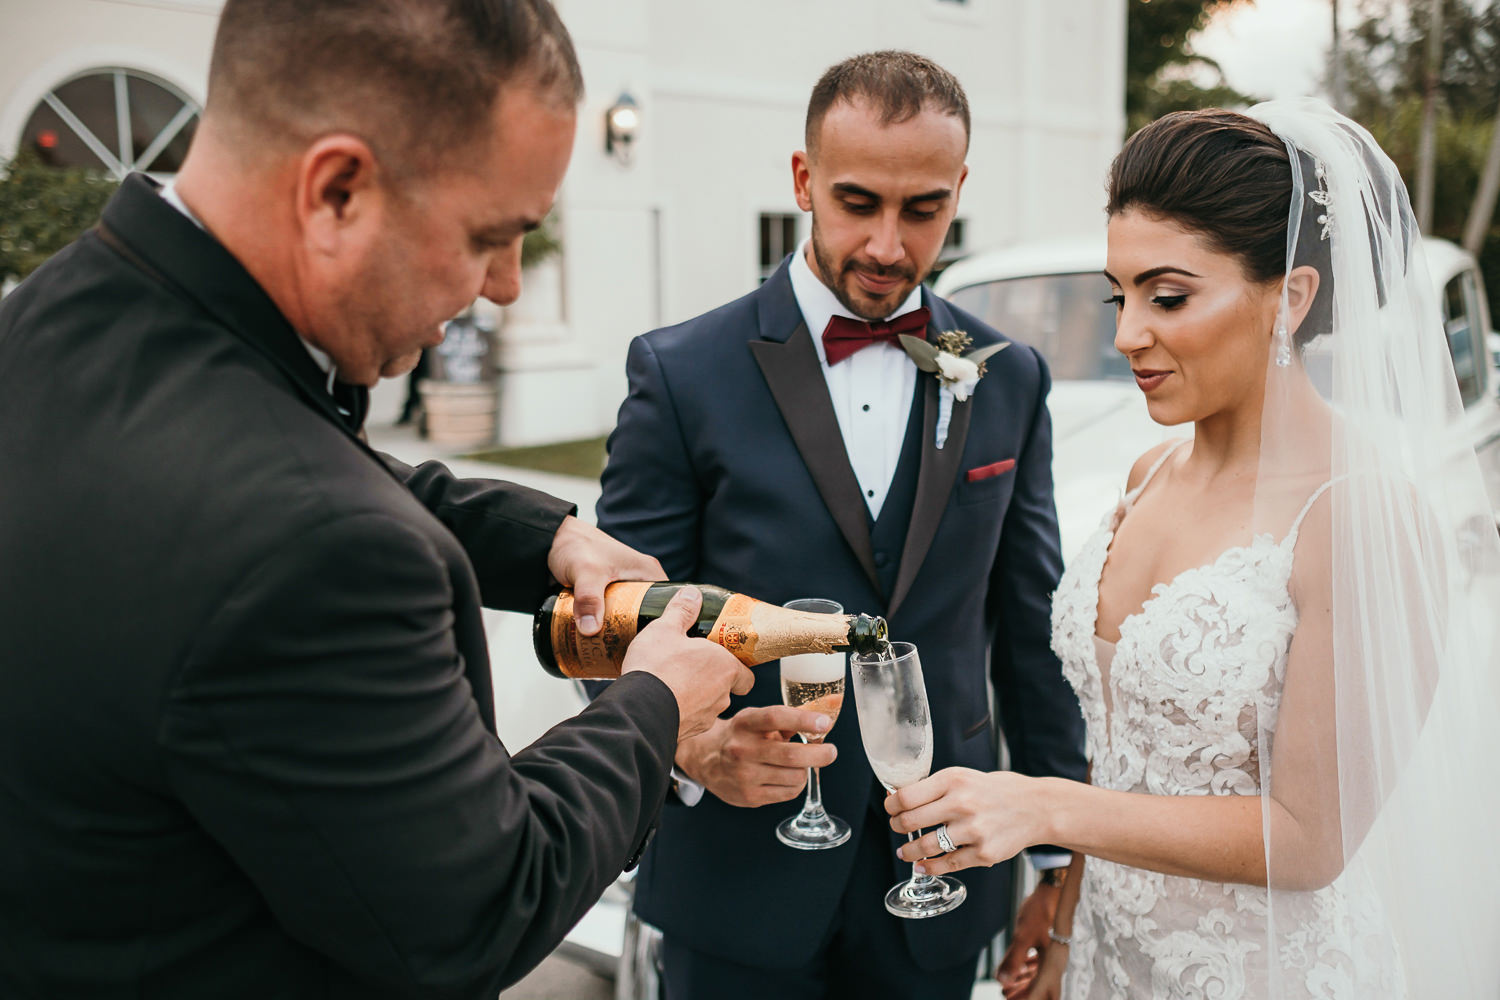 driver pouring newlyweds champagne